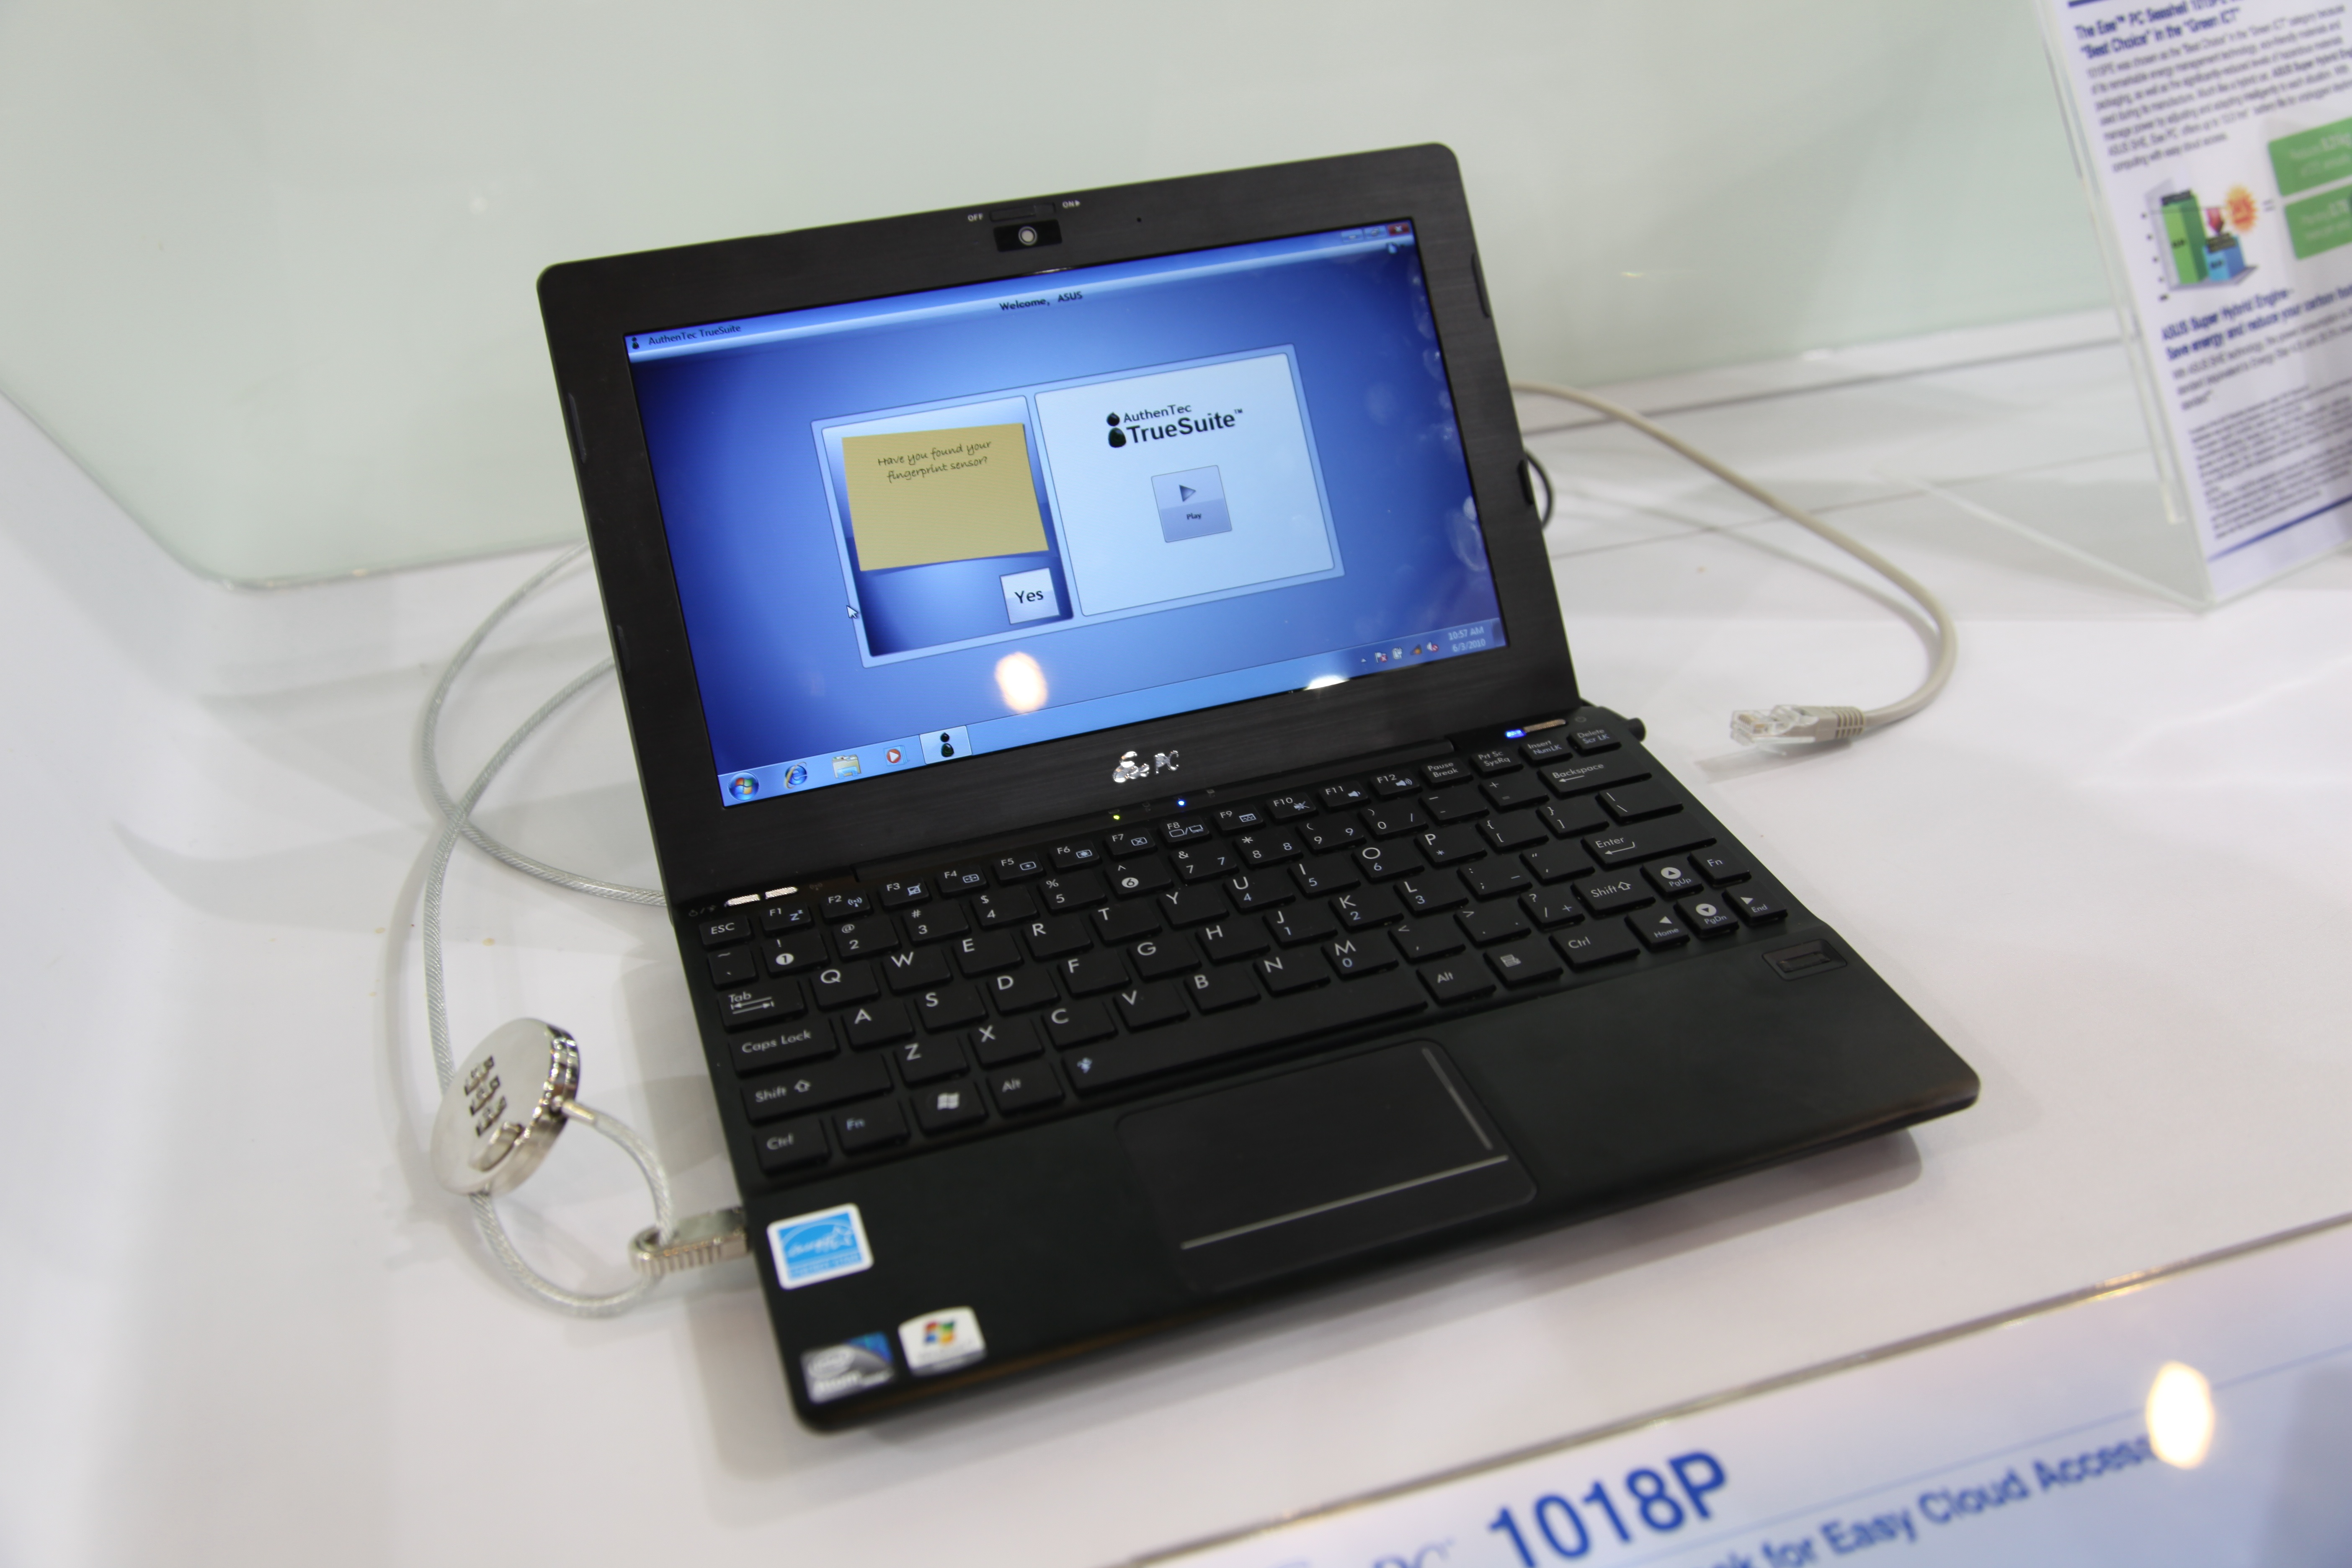 Asus Eee PC 1018P Driver for Windows 10